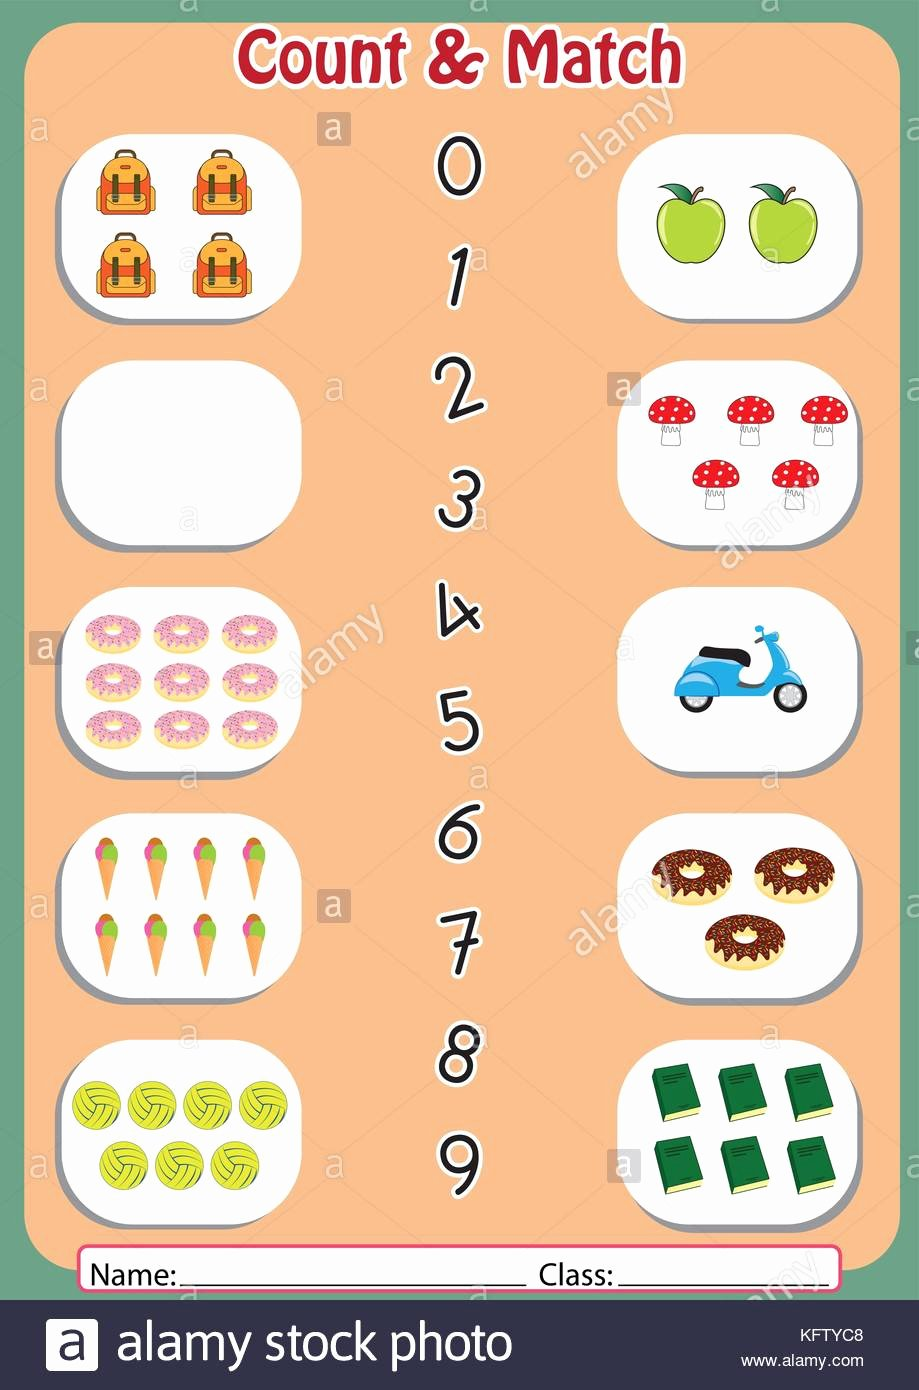 Matching Numbers Worksheets for Preschoolers Inspirational Match the Numbers to Objects Worksheet for Preschool Stock